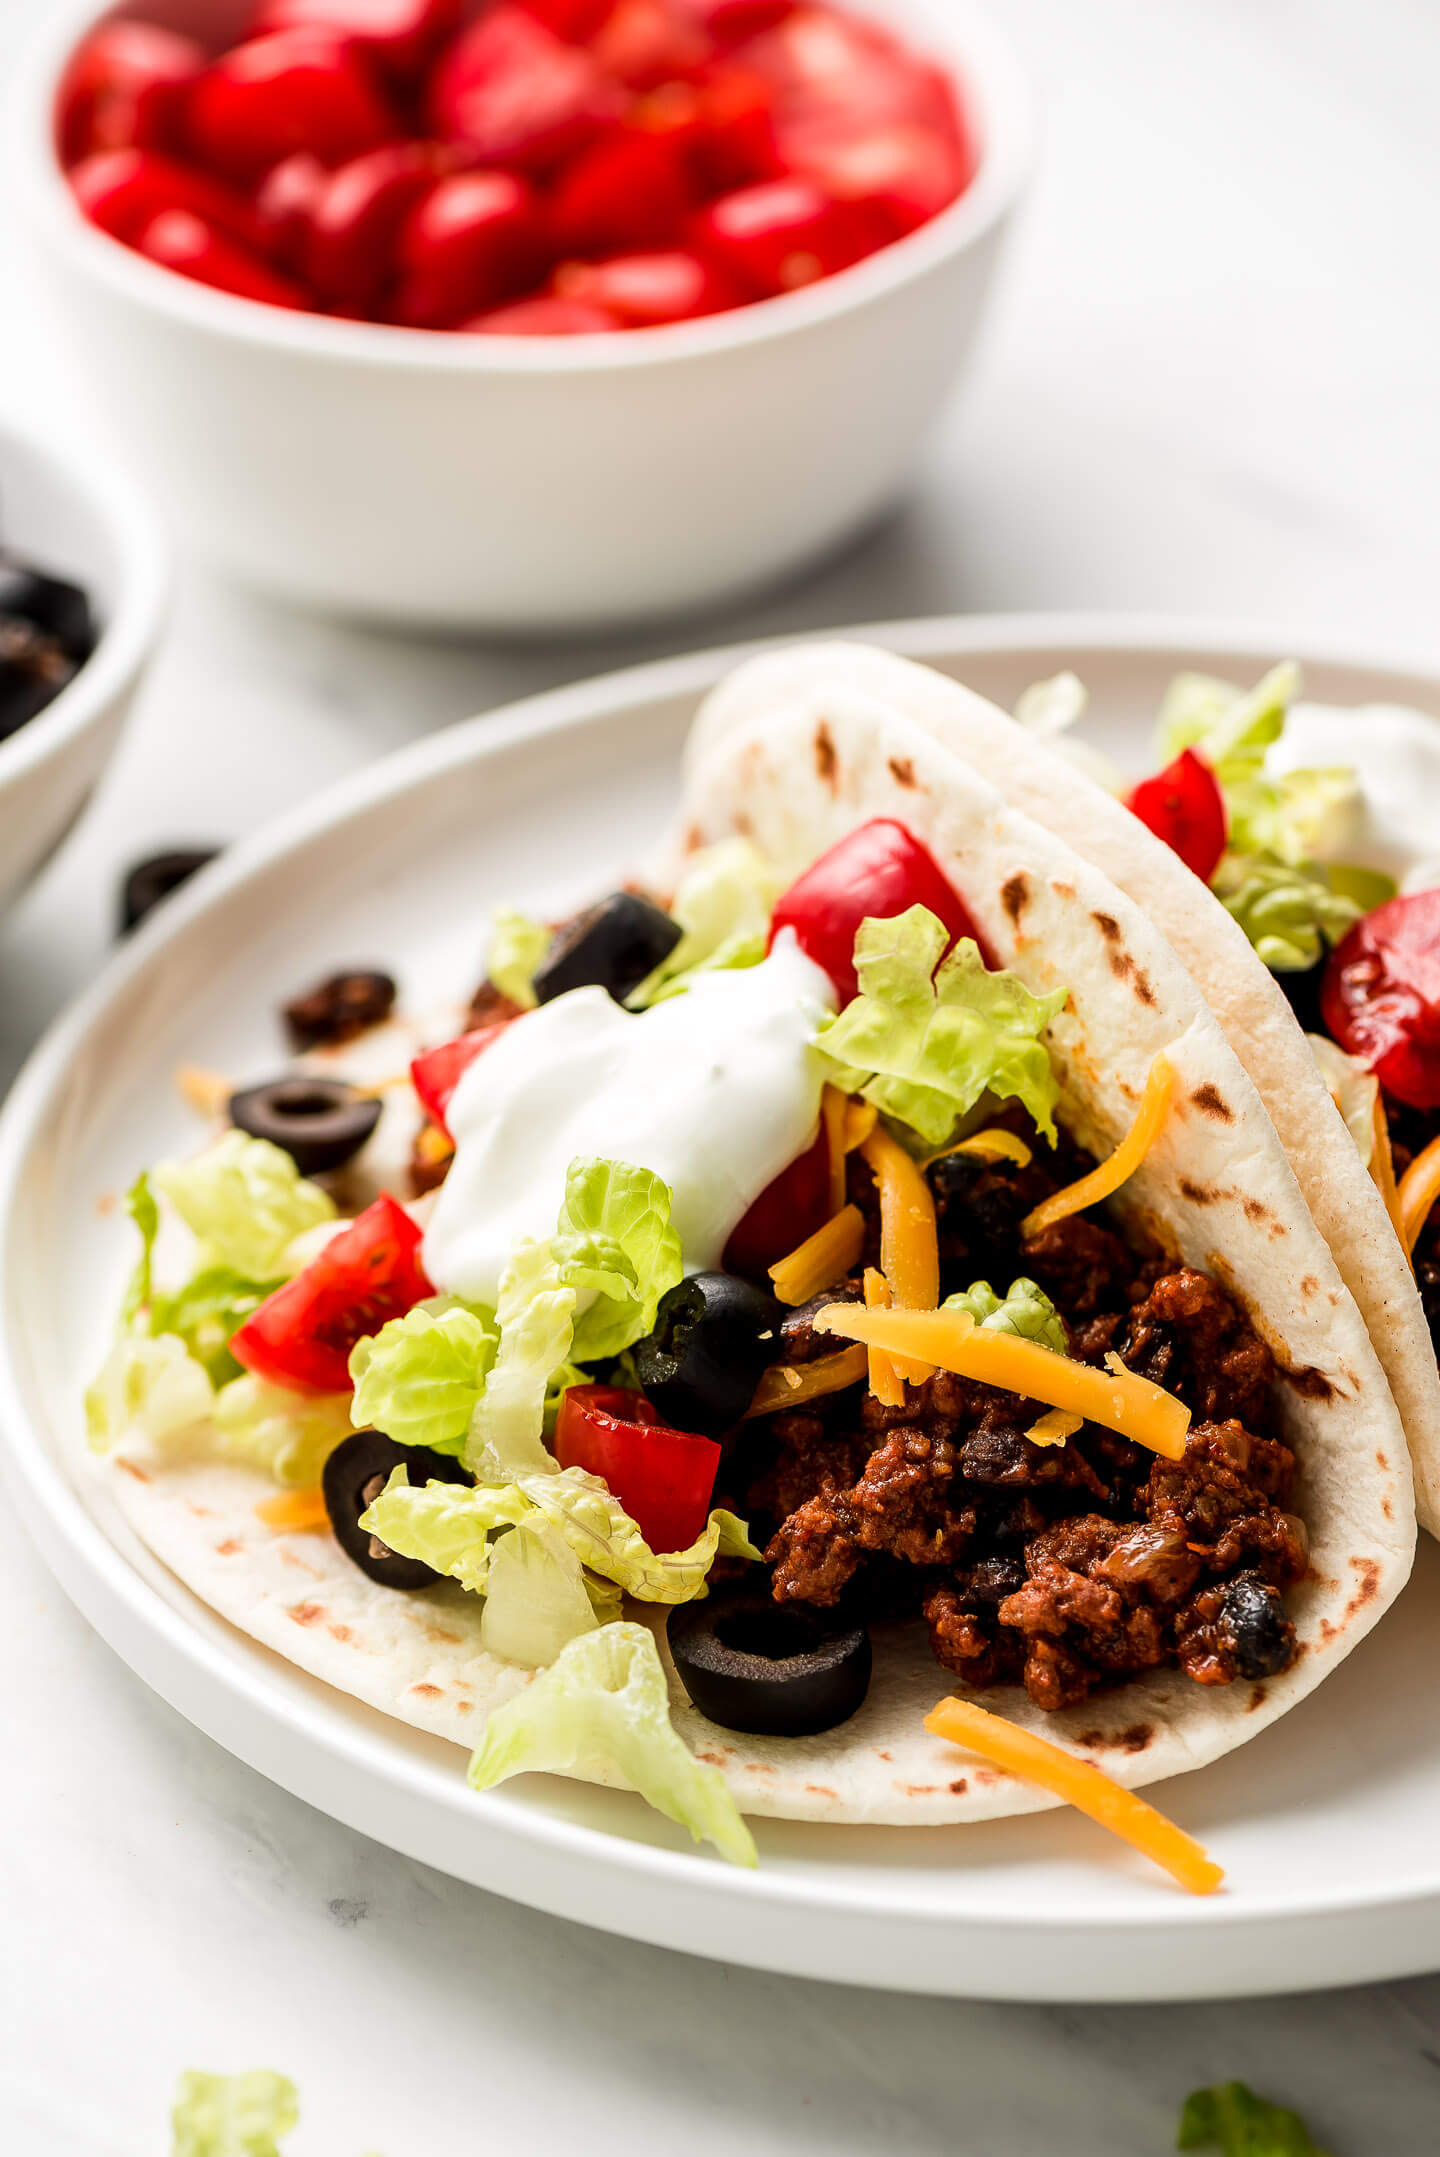 Soft shell Ground Beef Tacos filled with ground beef, beans, cheese, lettuce, olives, tomatoes, and sour cream.